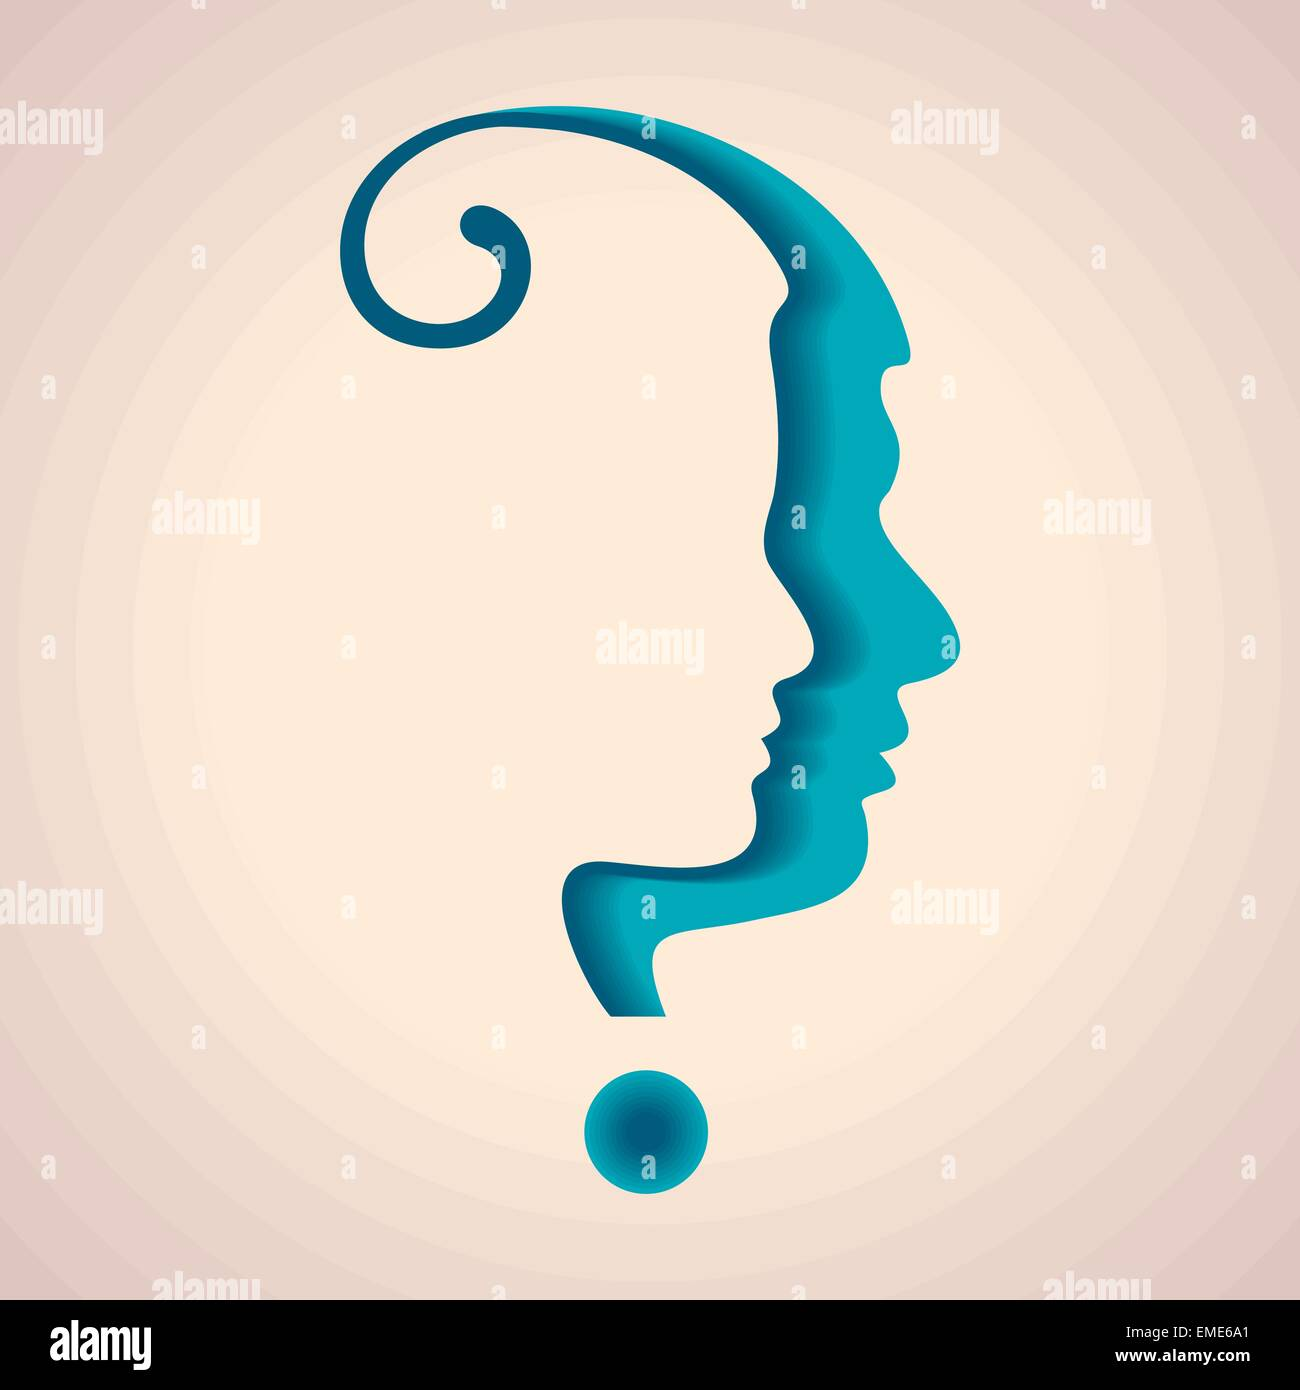 silhouette of a question mark with male and female face - Stock Image